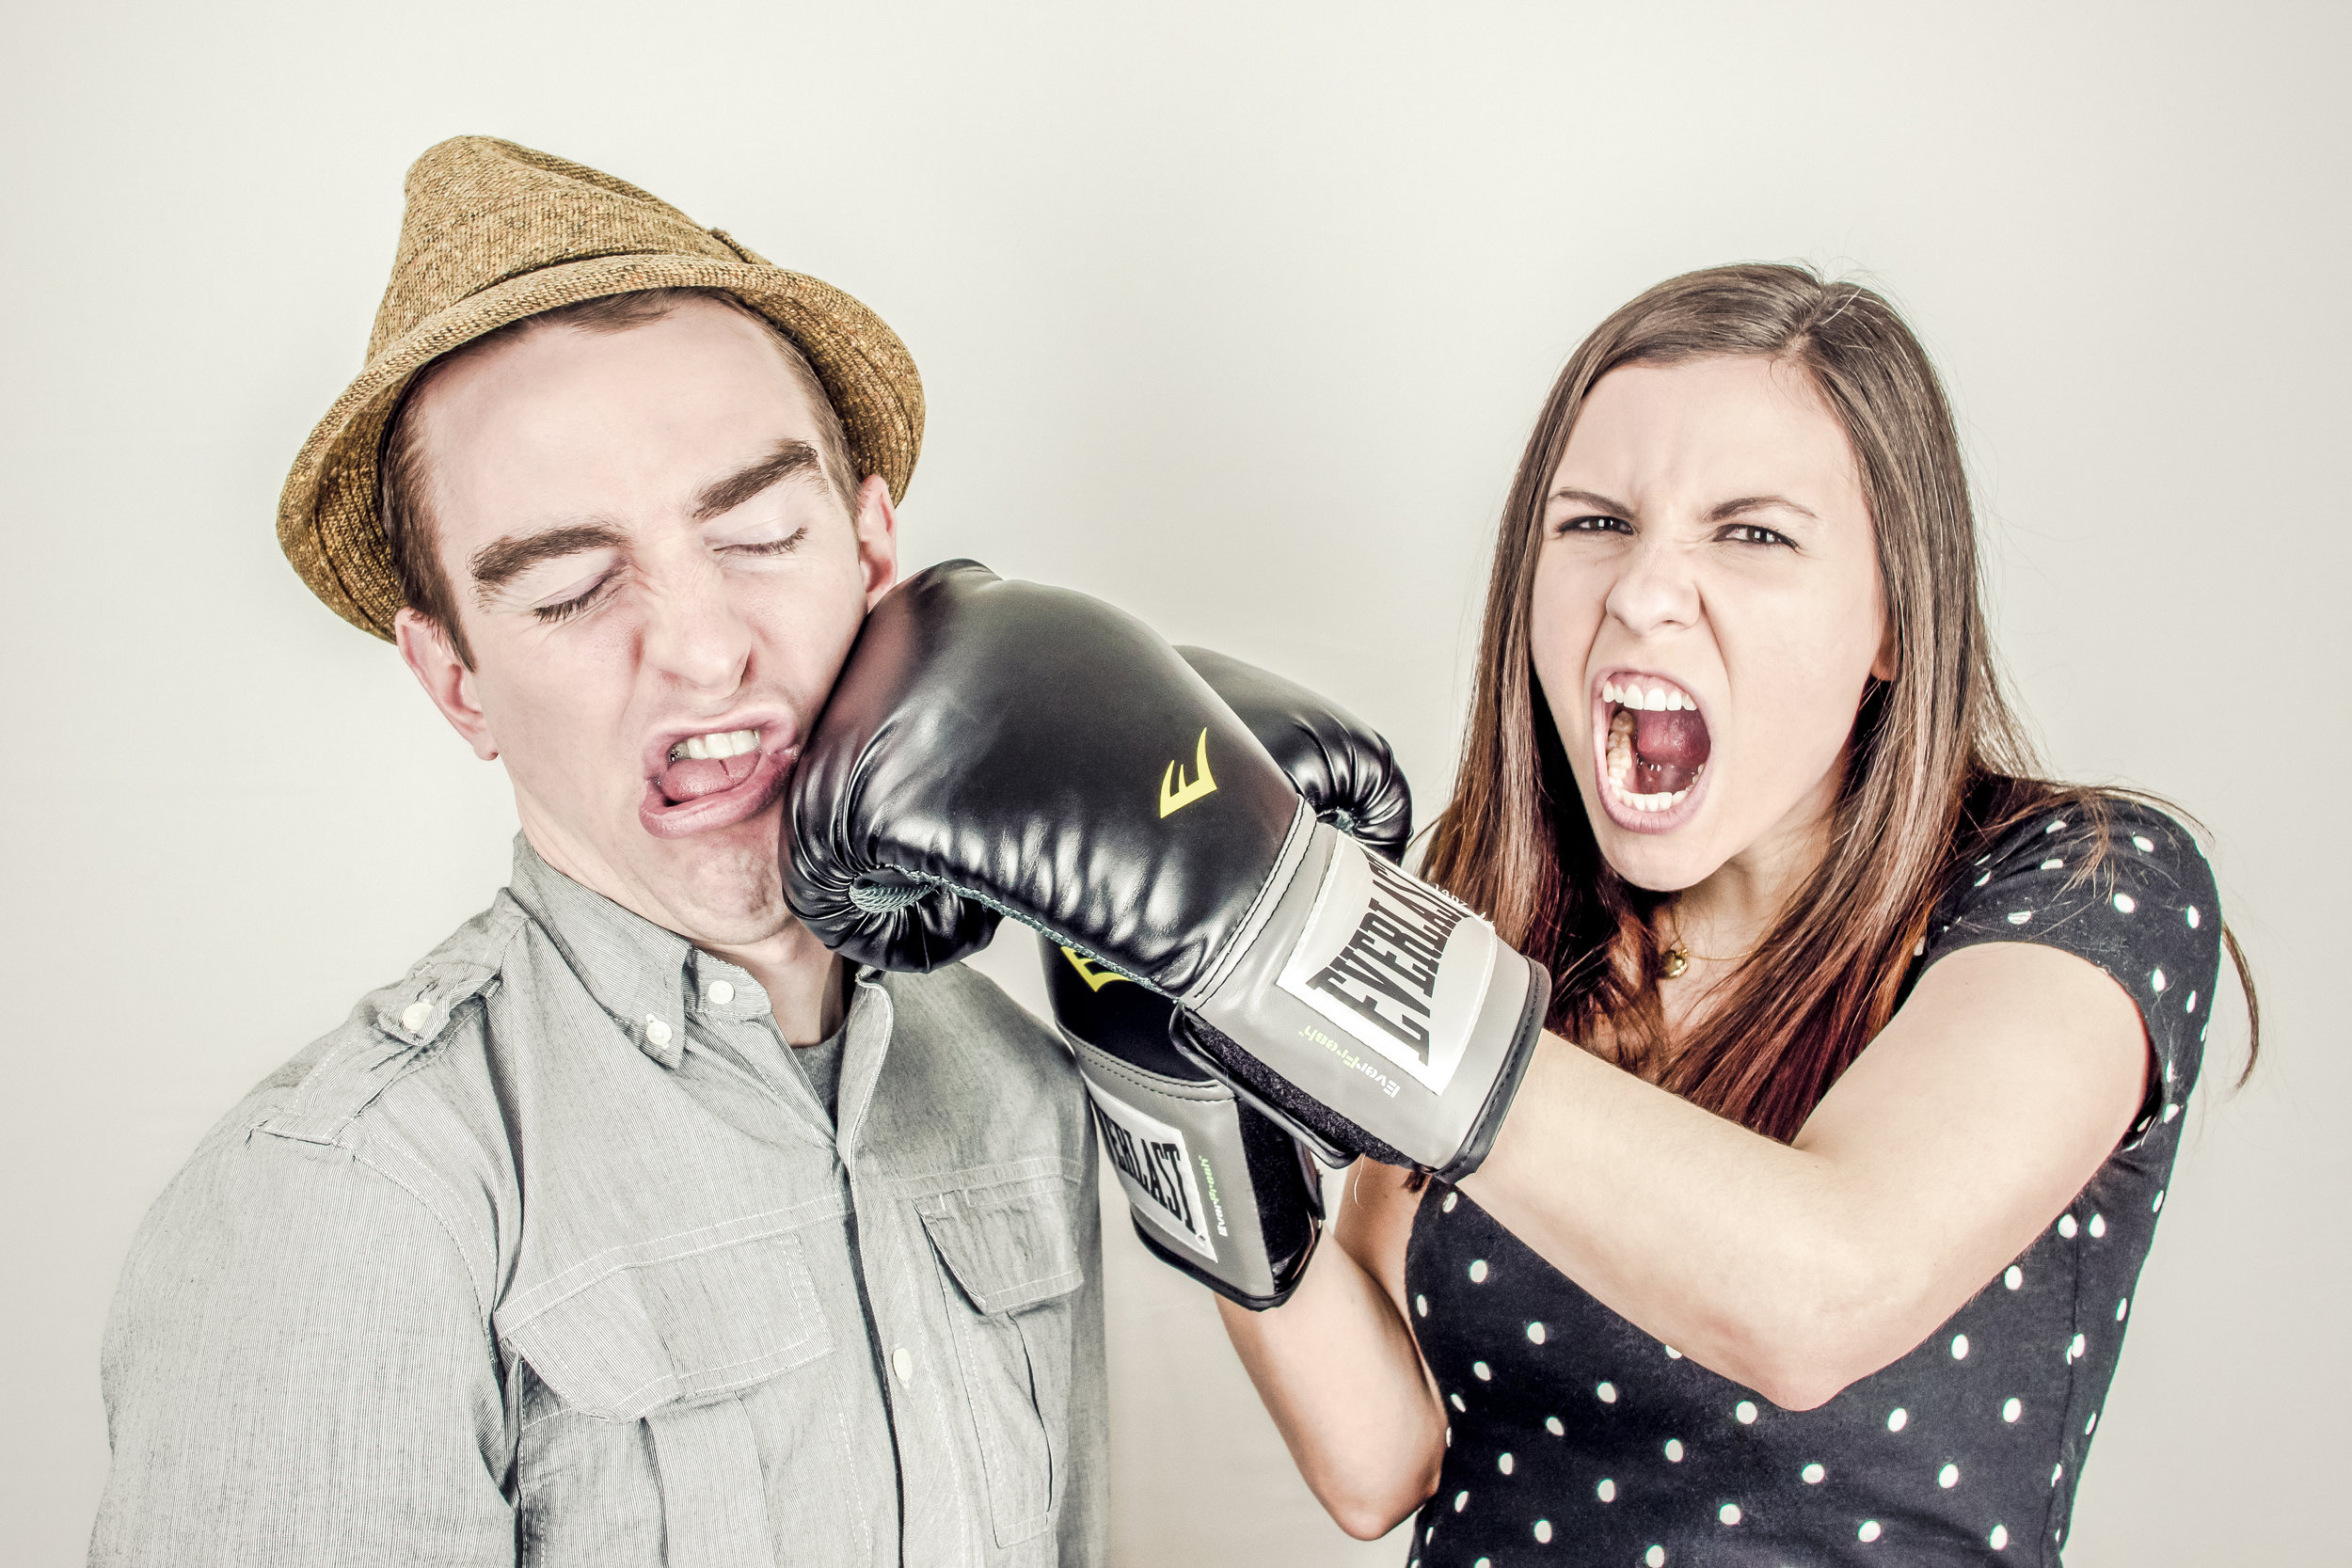 What's eating you up? - Here are few things you need to know about how anger affects our relationships.